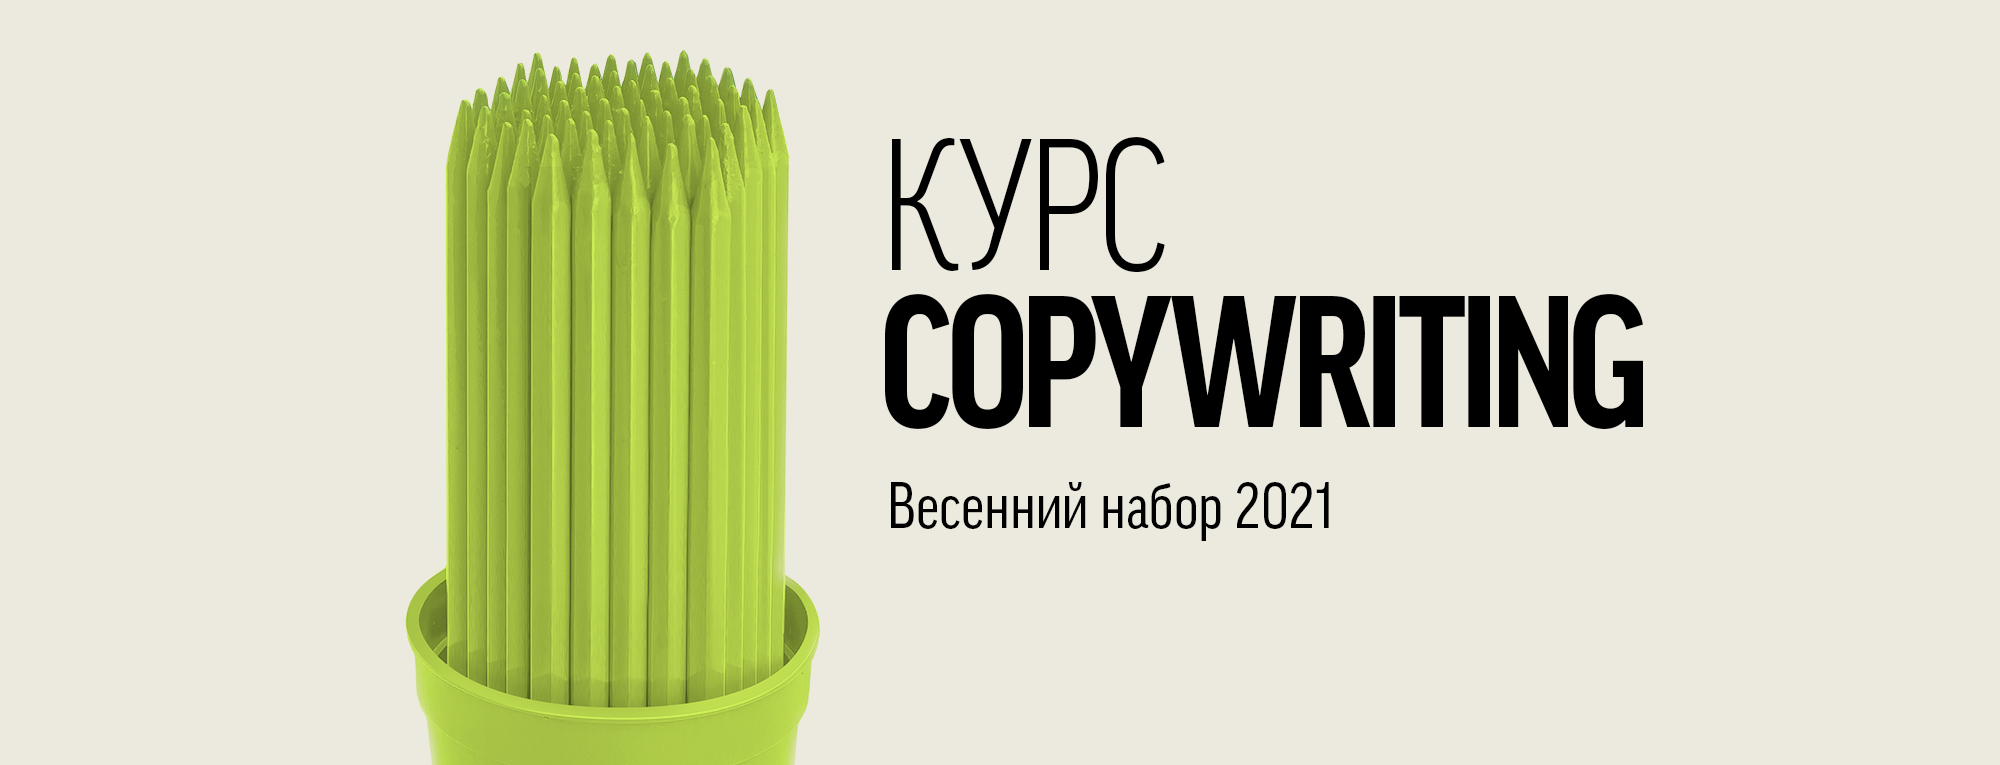 КУРС COPYWRITING